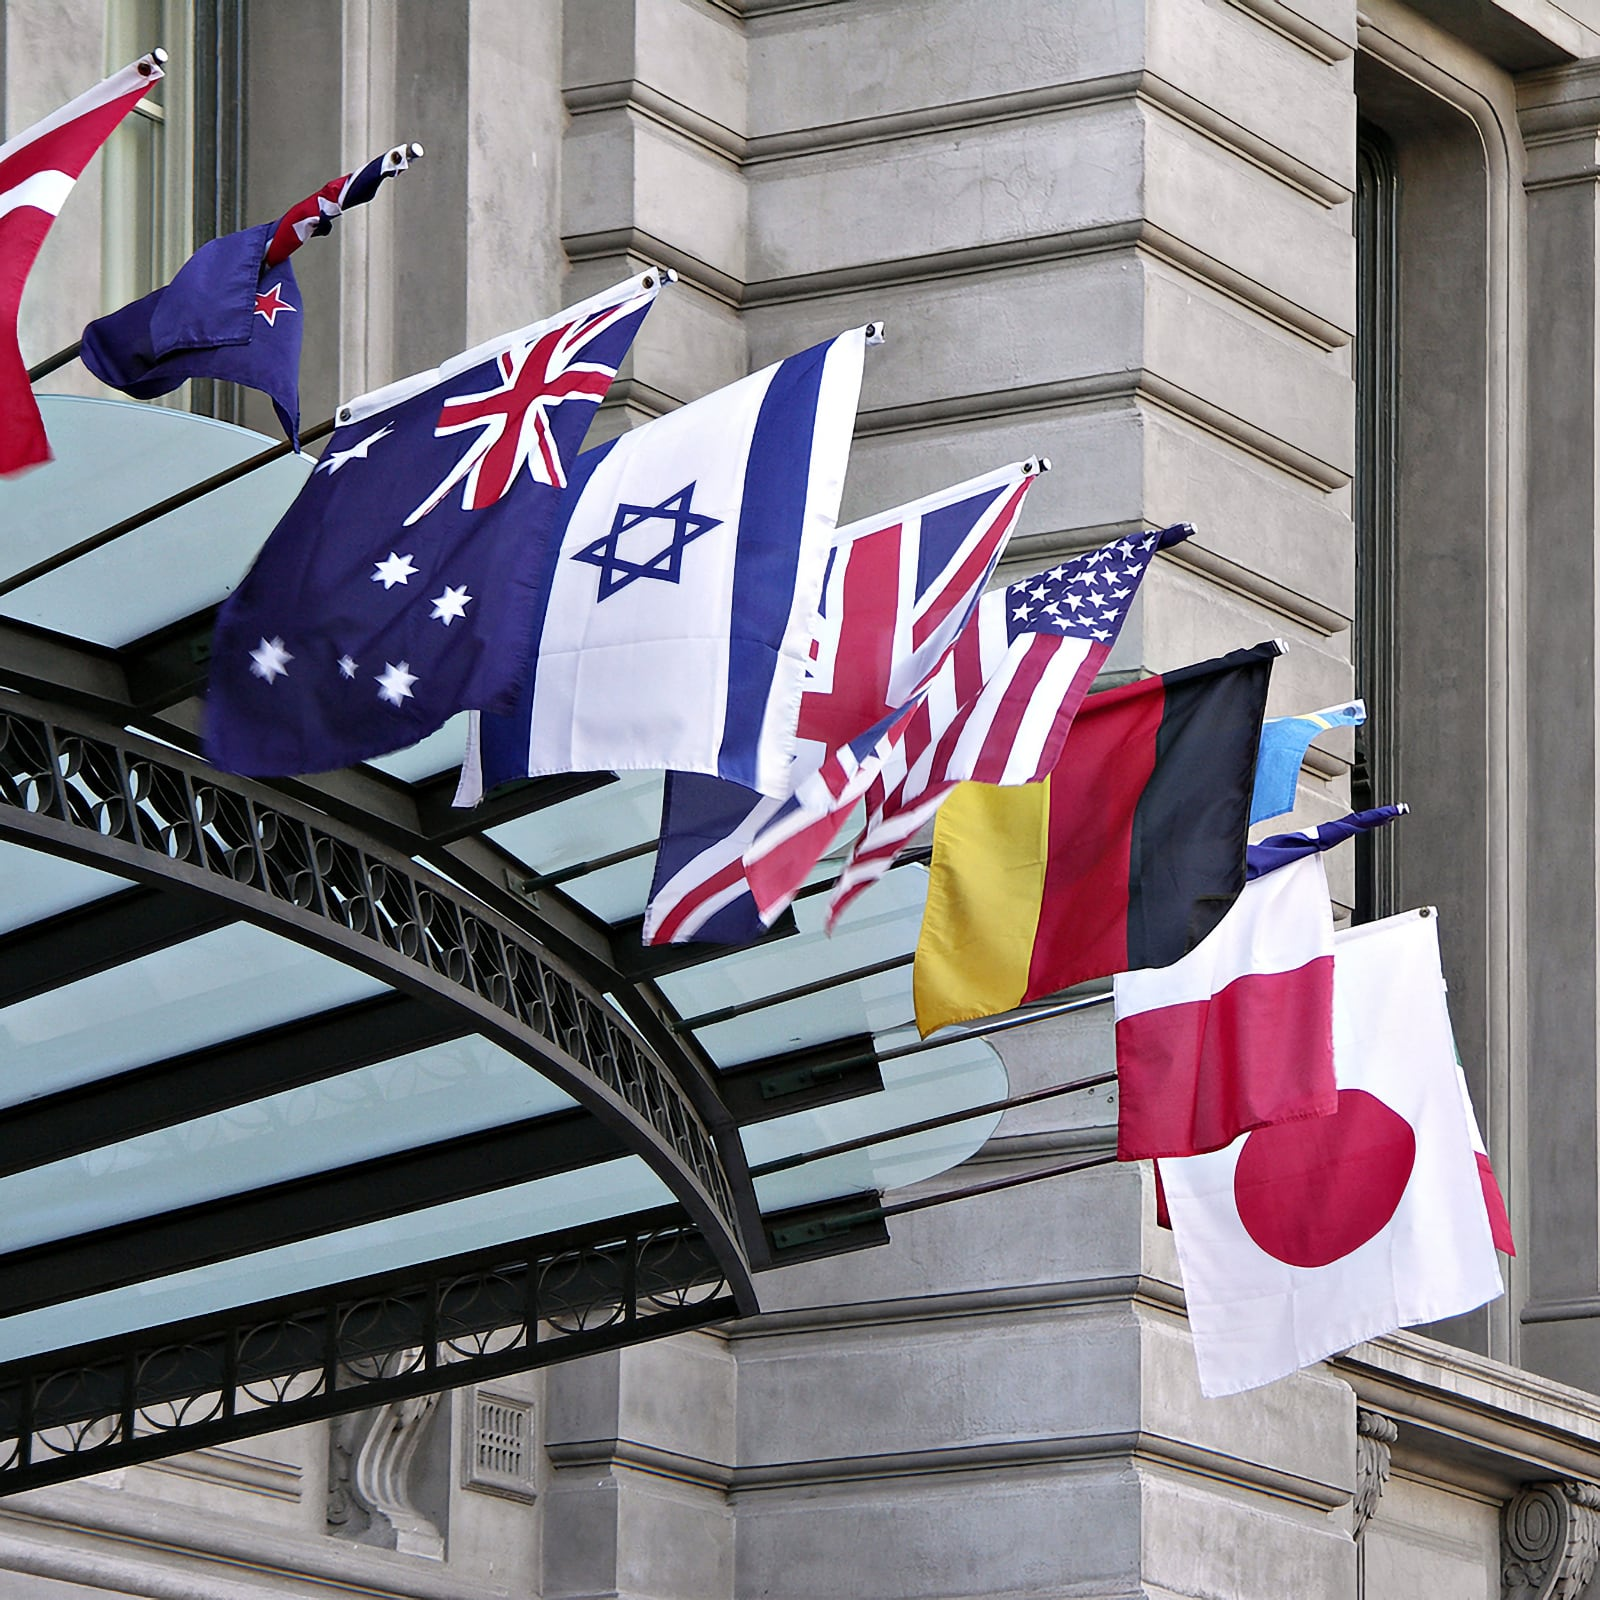 Photo of various world flags flying above entrance to a classic stone building